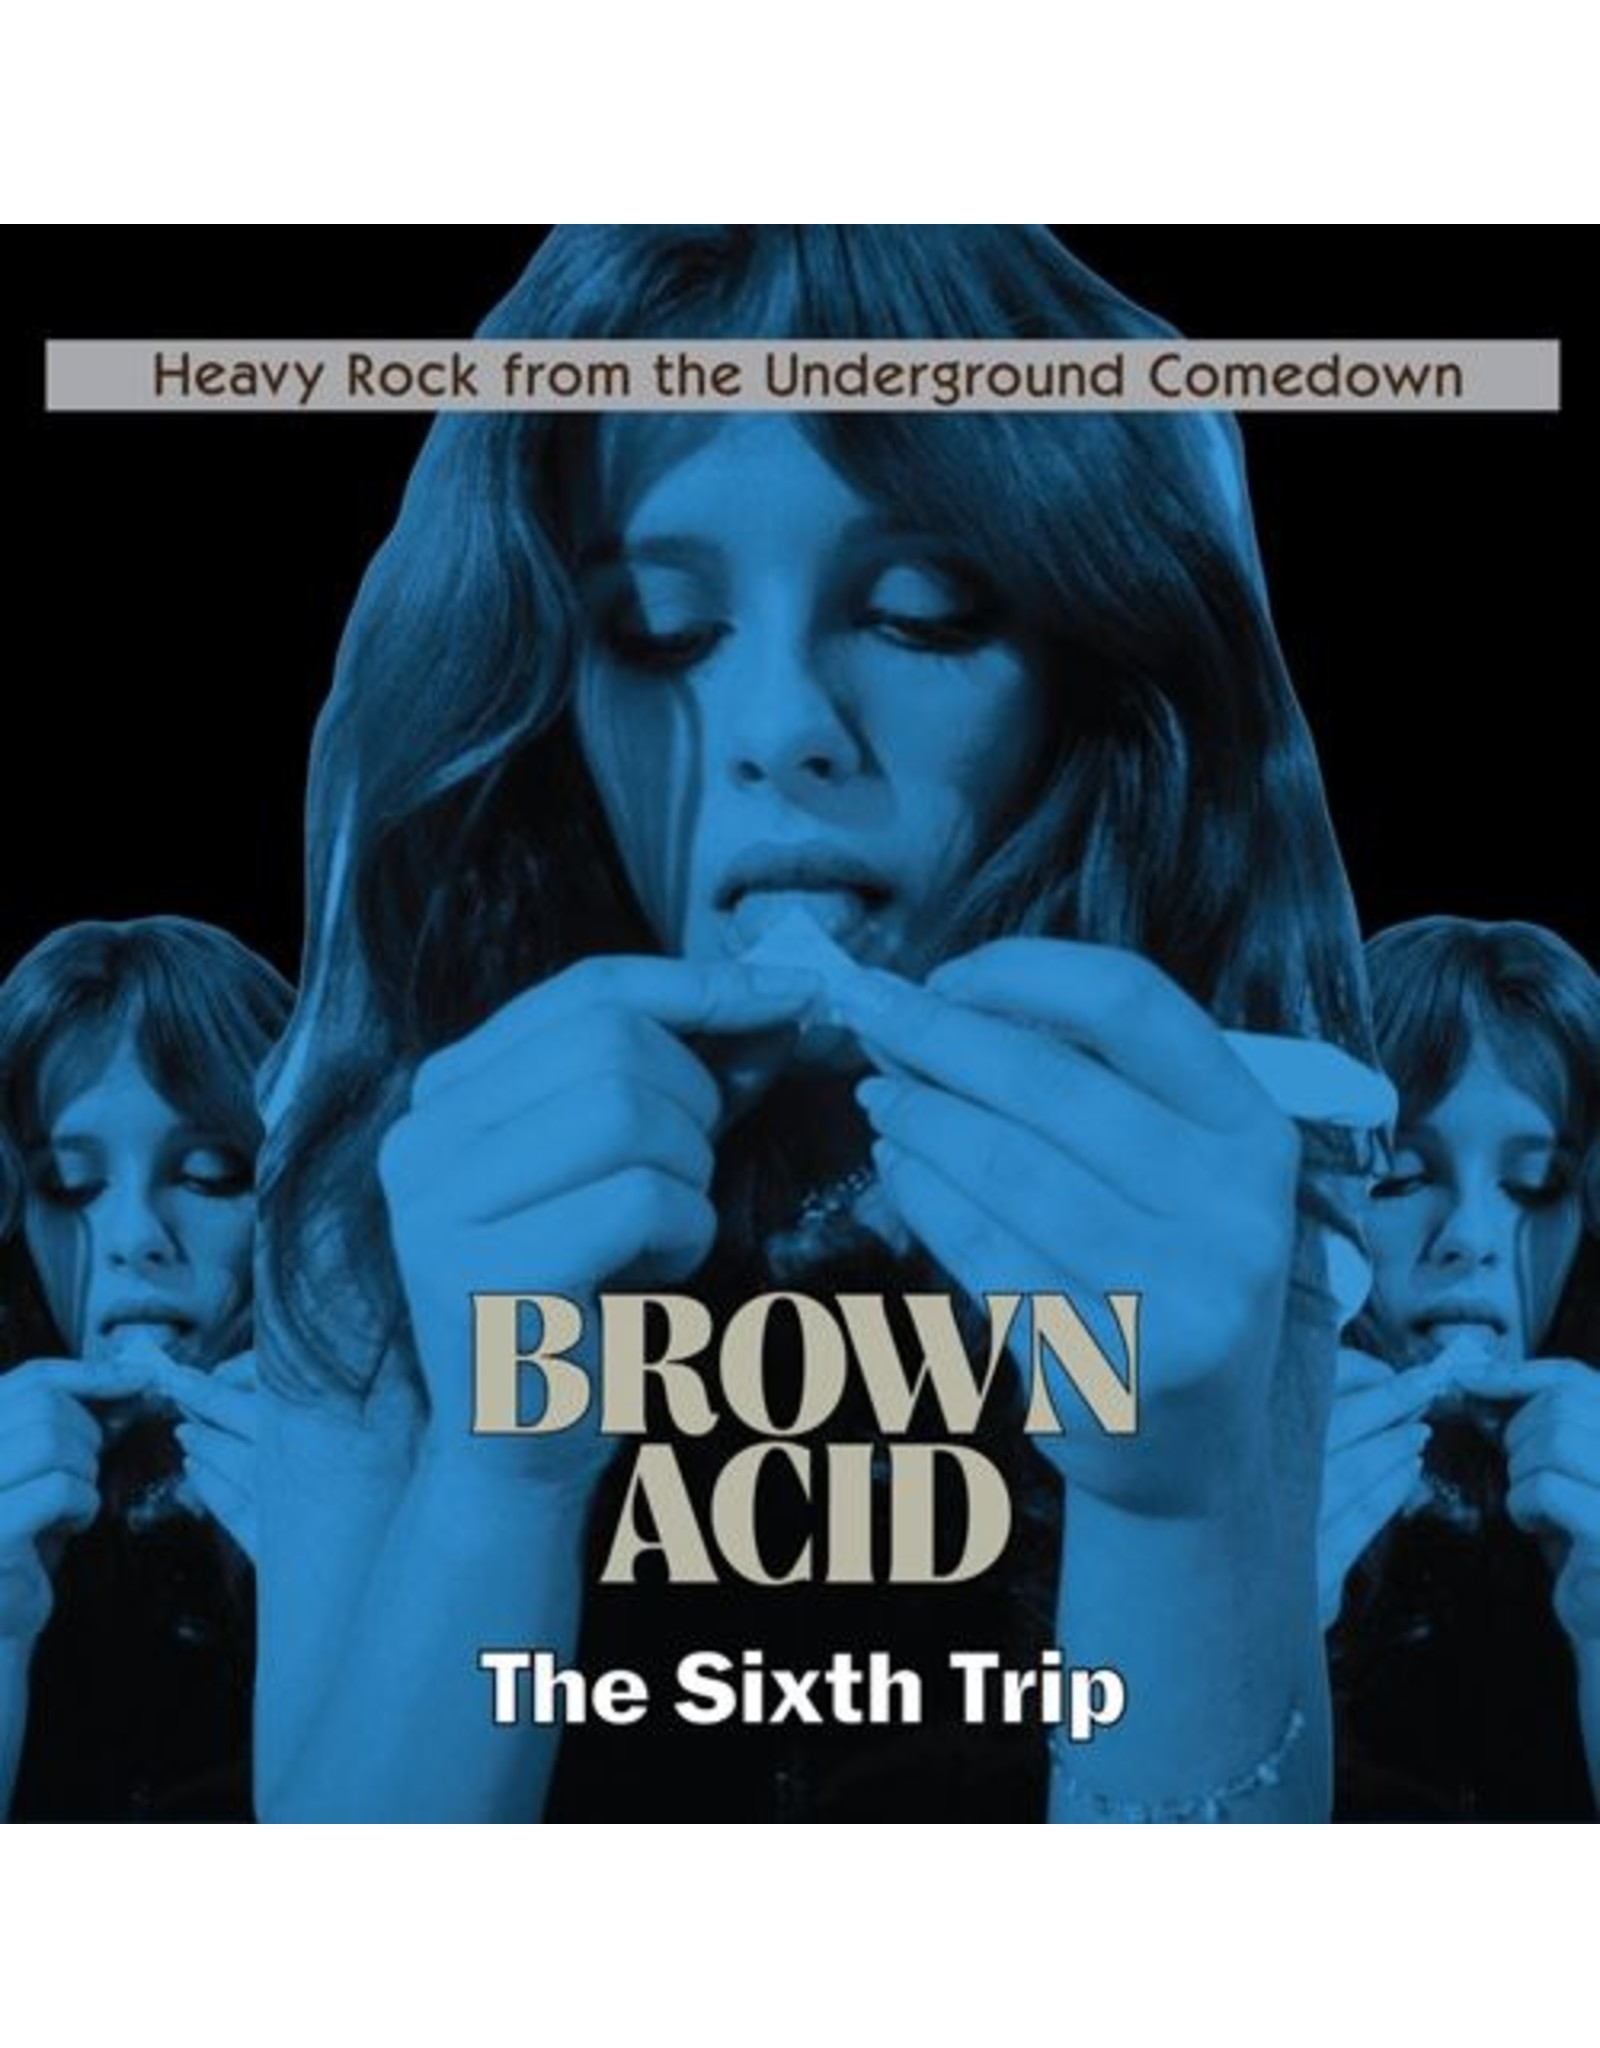 Riding Easy Various: Brown Acid - The Sixth Trip LP